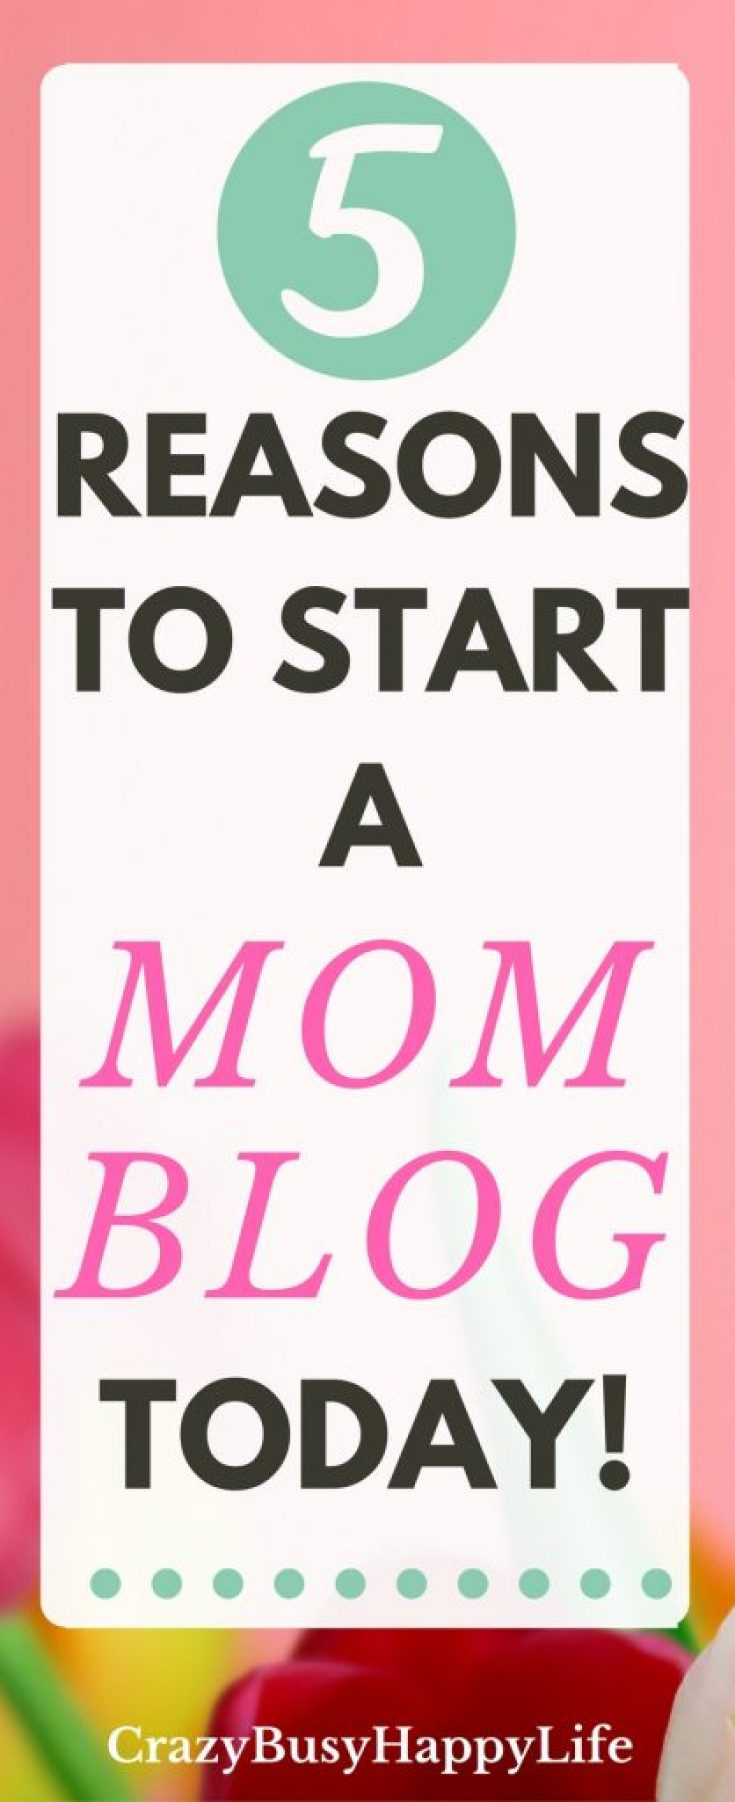 Here's a post that gives you five reasons why you should start a mom blog today. Don't let the opportunity pass you by. Blogging is fun, creative, and you can earn a great side income from it. Click through to read more.